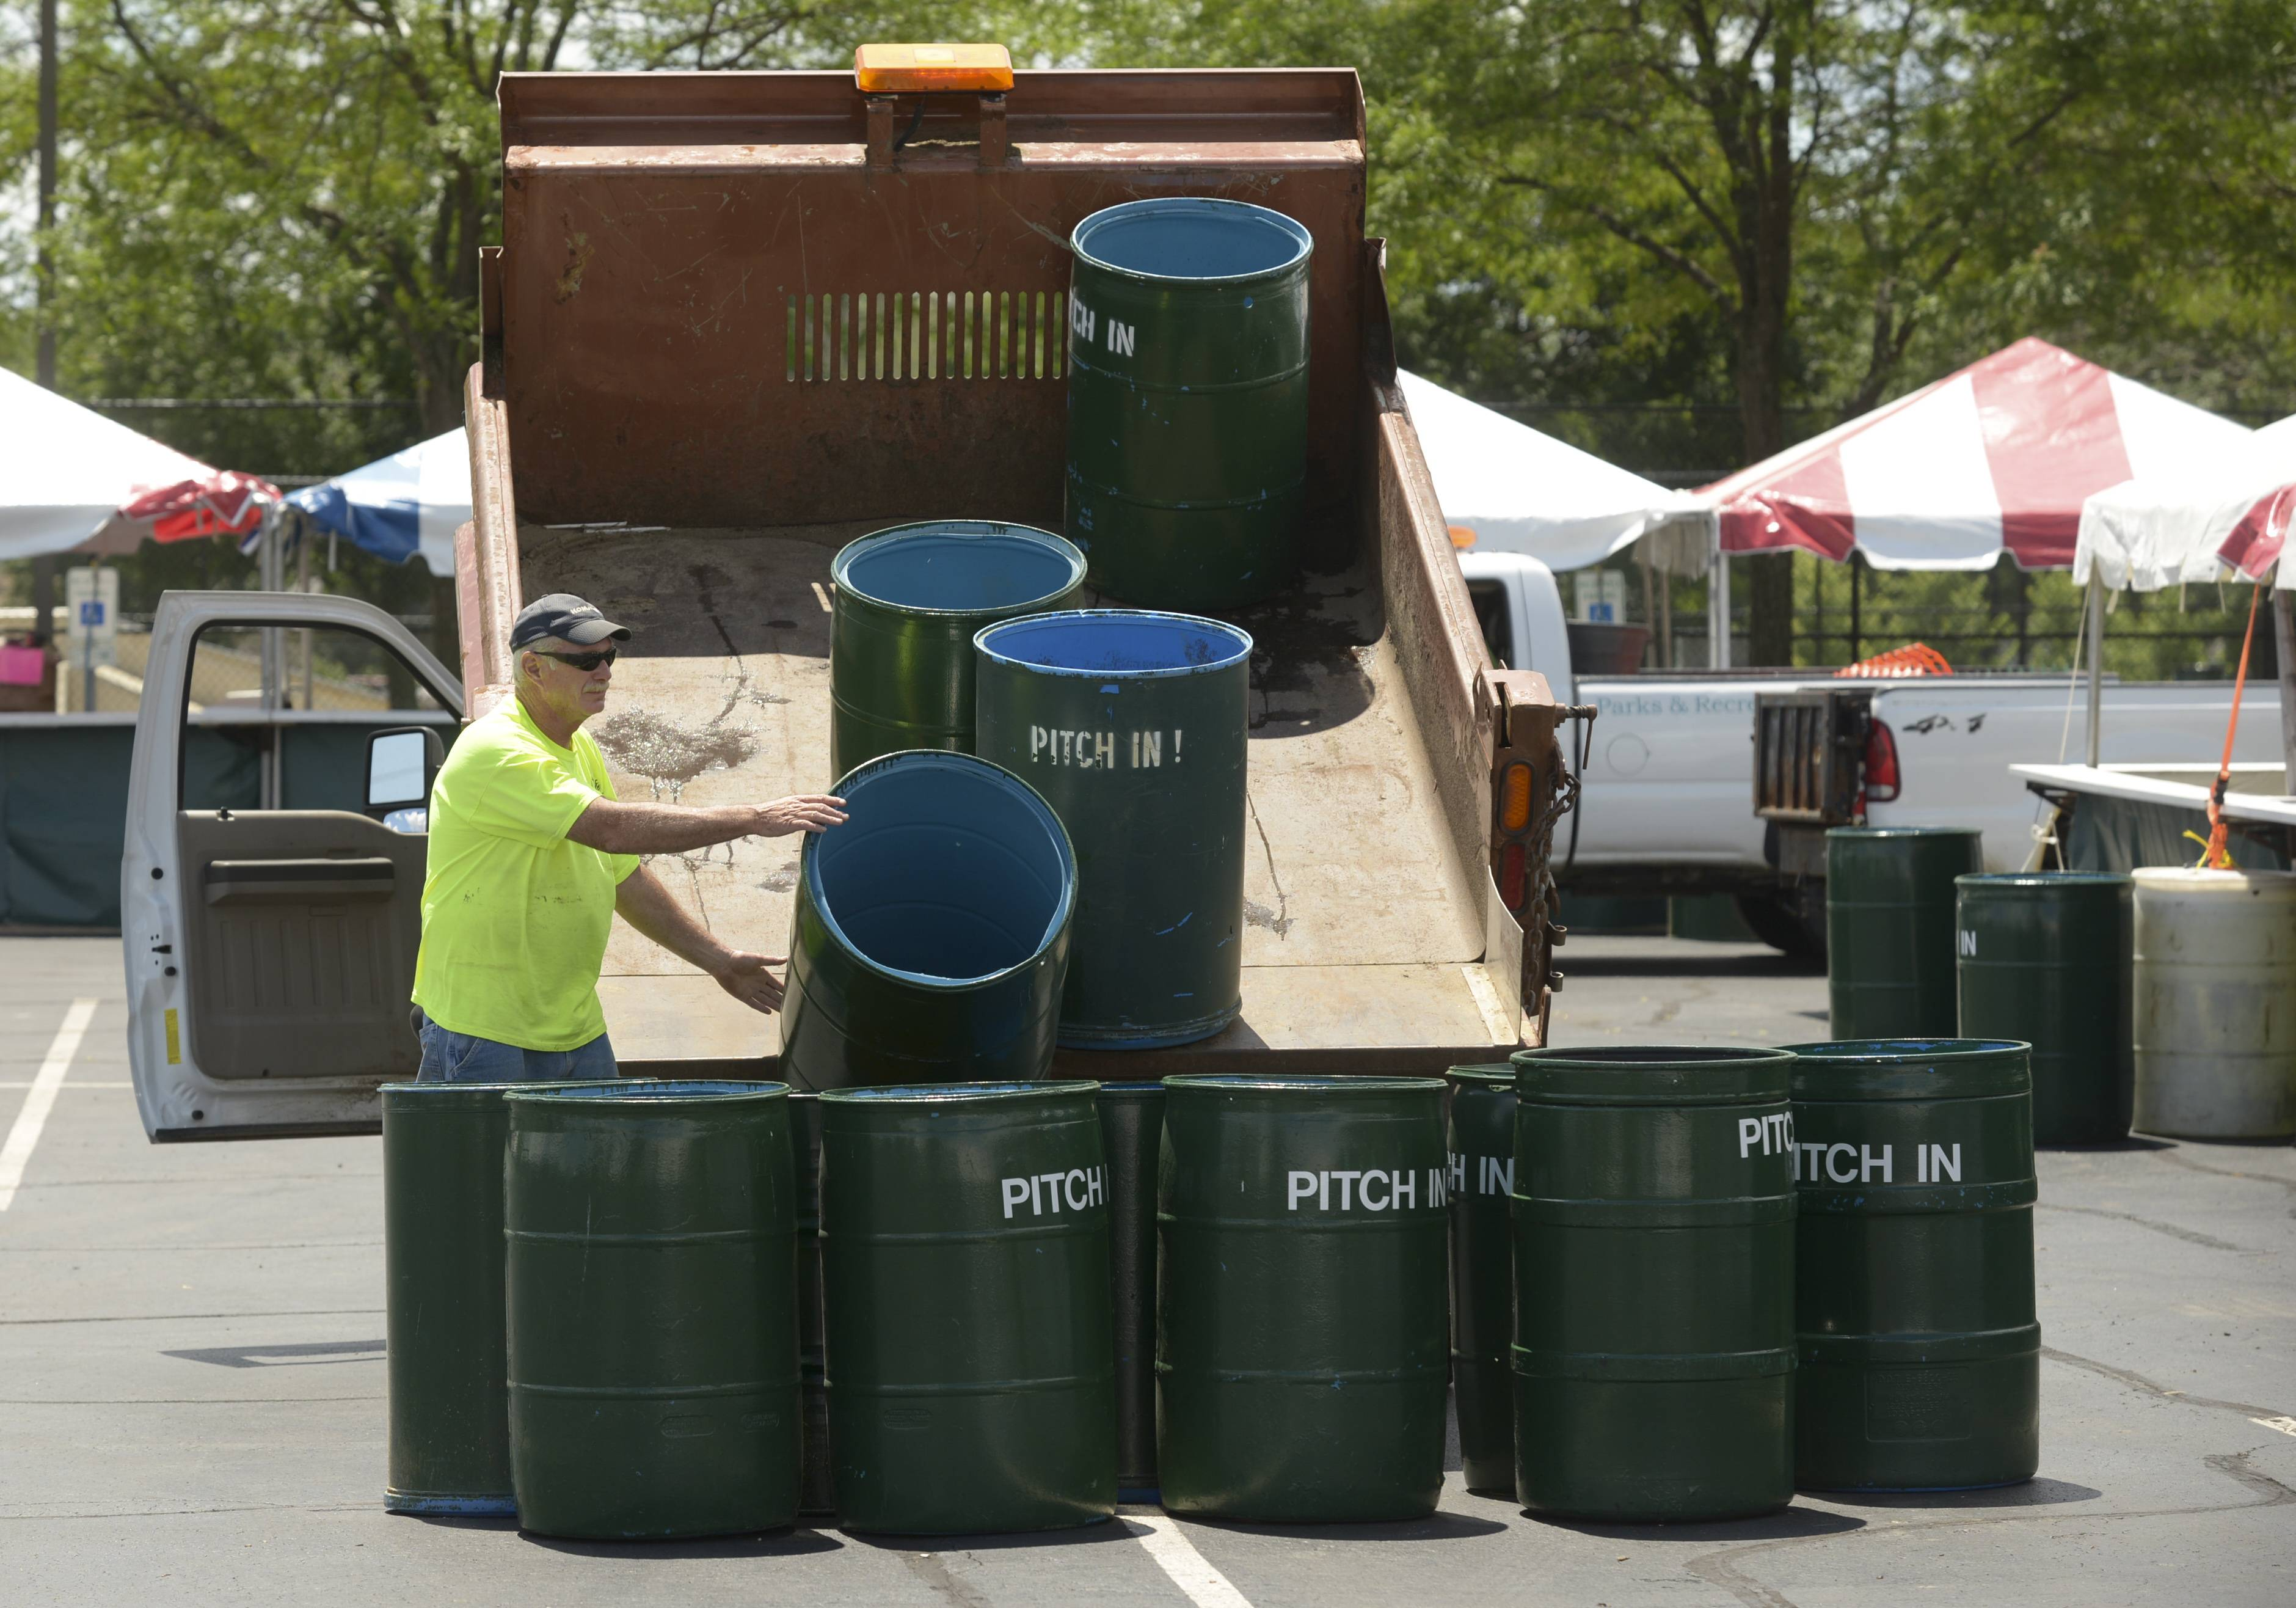 Ed Murphy of the Glendale Height Parks & Recreation Department unloads trash cans in the food court in preparation for Glendale Heights Fest in Camera Park.